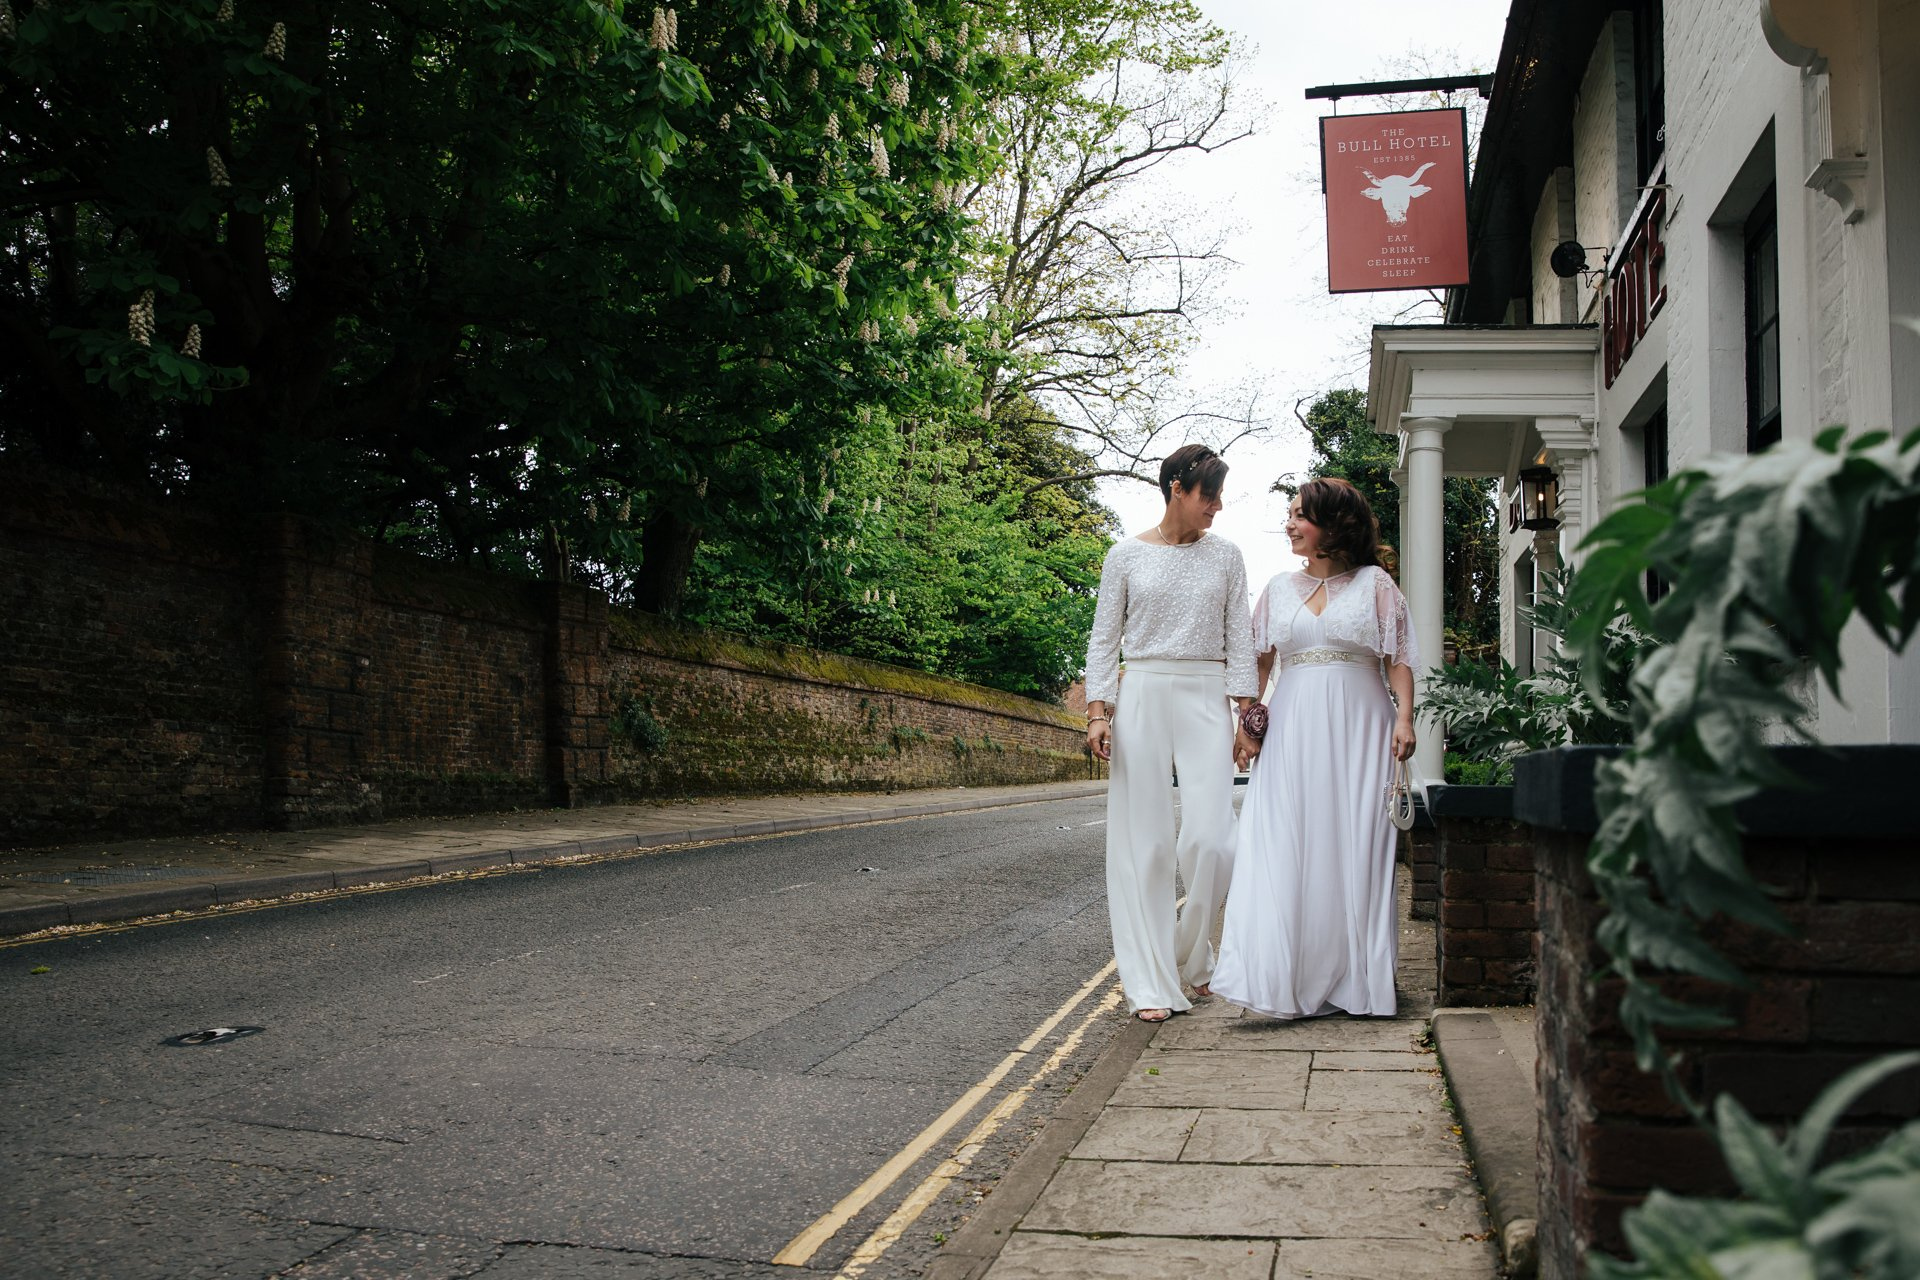 Two brides outside the Bull Hotel Wrotham after their Wedding